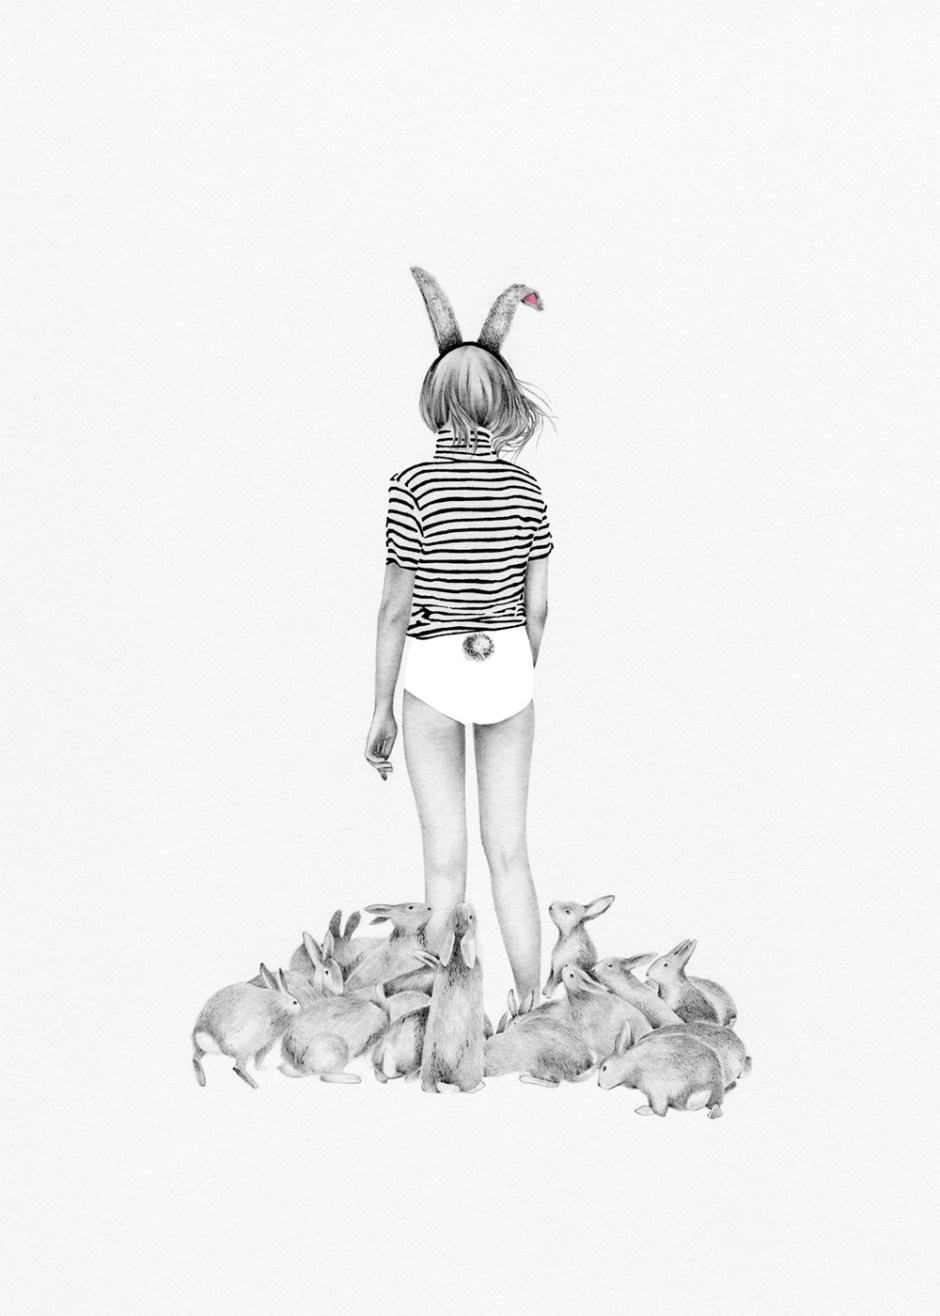 Caroline Morin - rabbit stripes